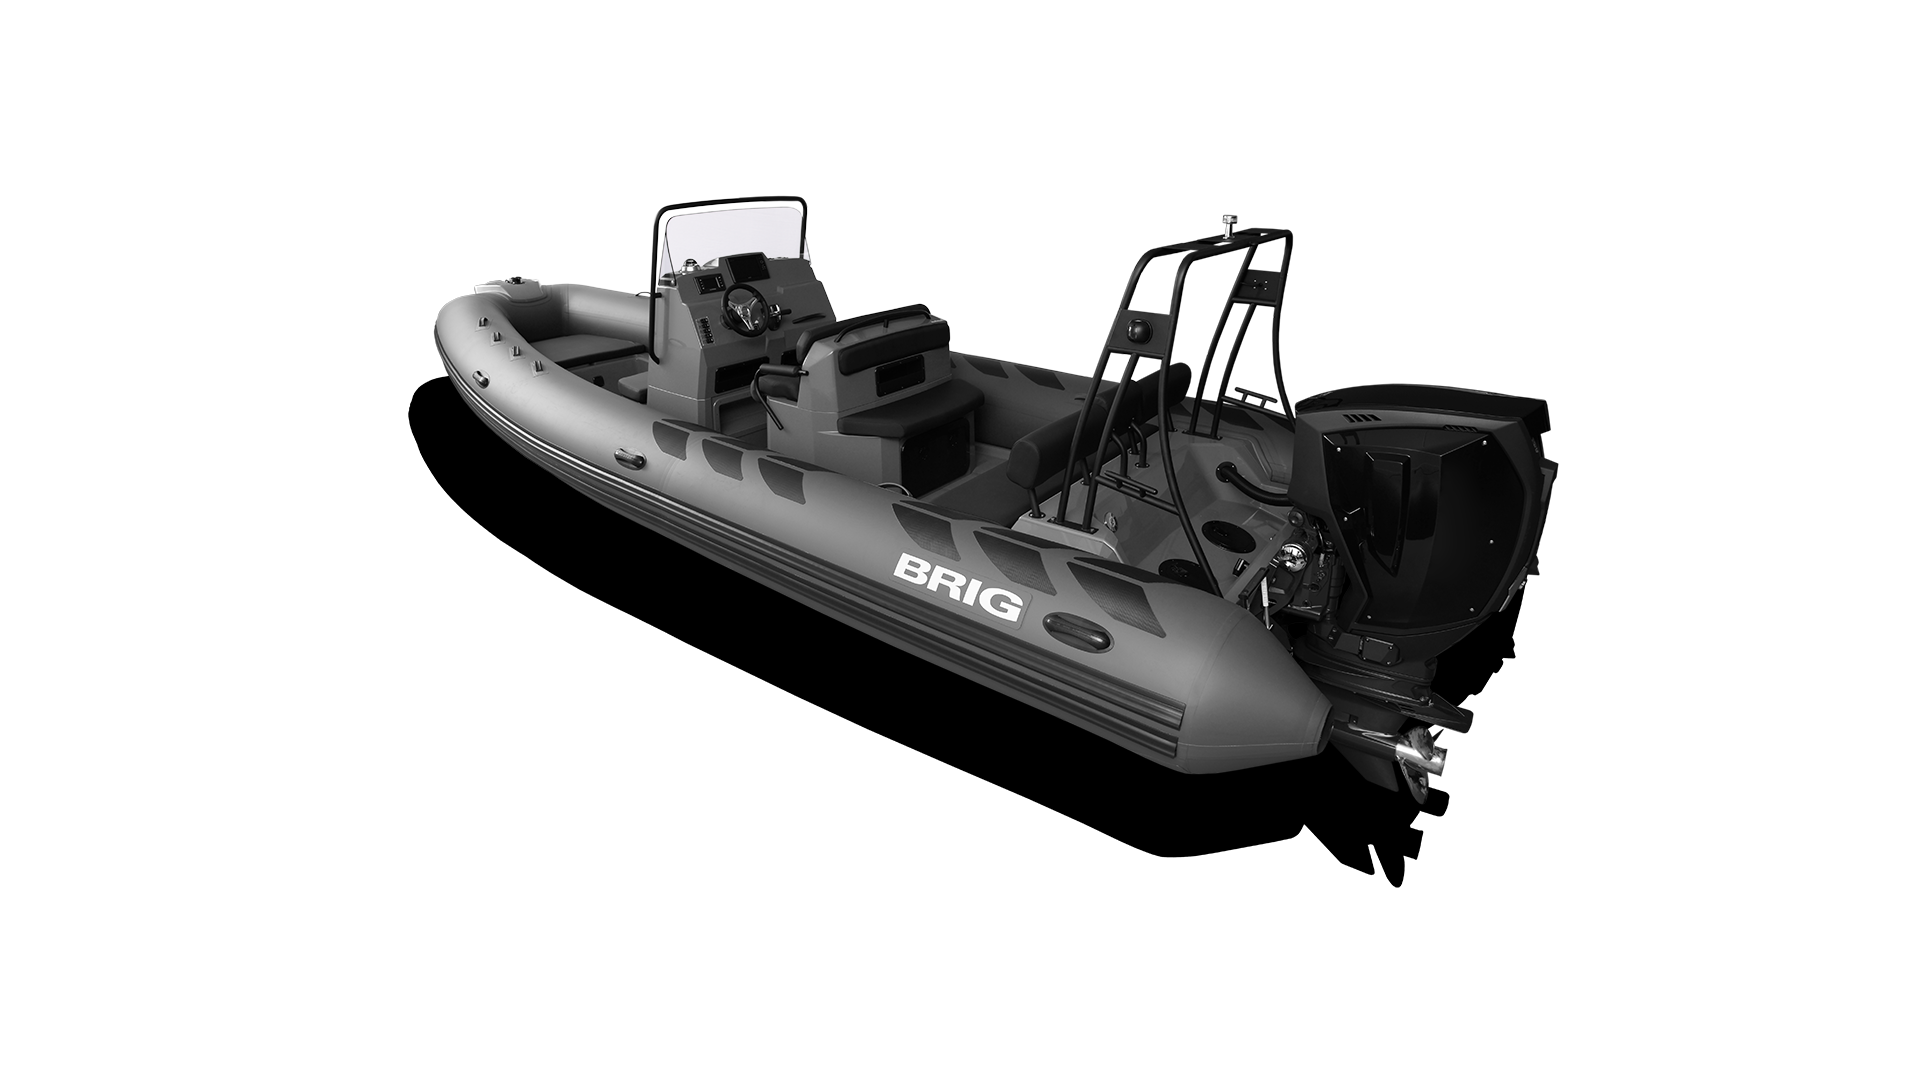 Navigator 700 Rigid Inflatable Boat